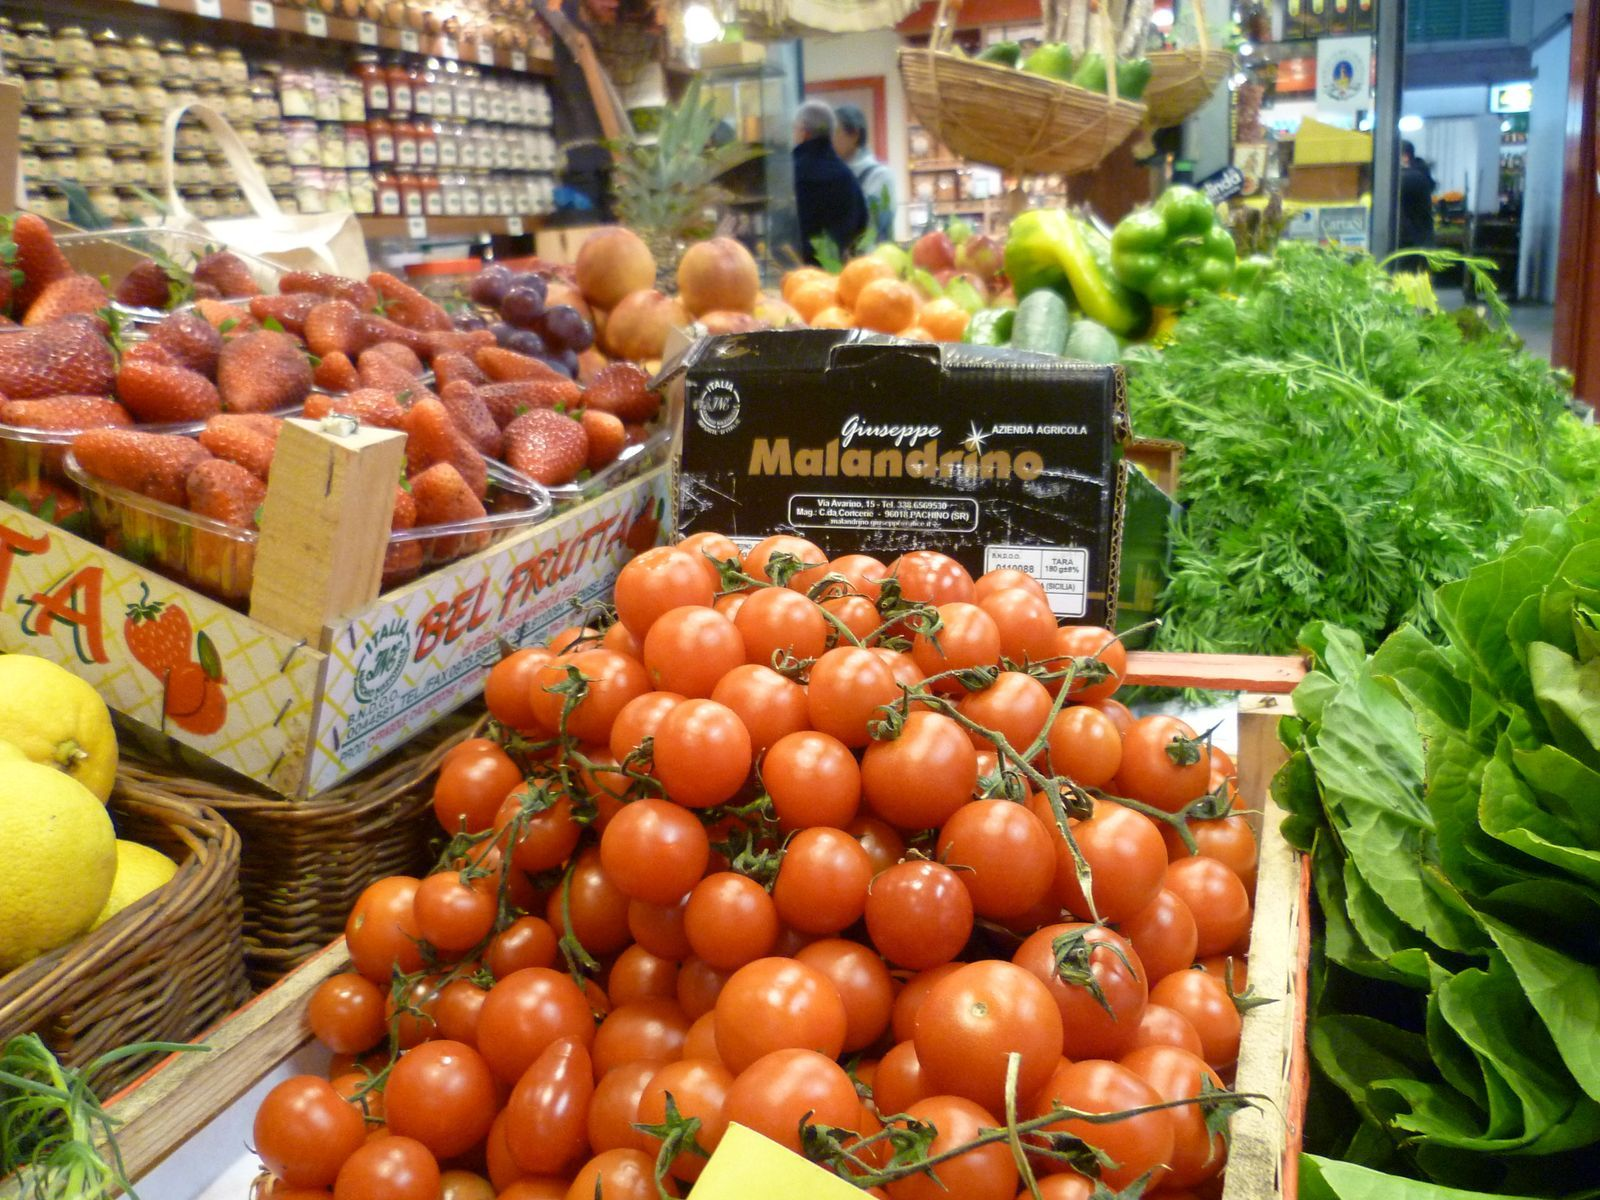 Mercato Centrale Grocery Store, Image of Fresh Vegetables for Online Italian Cooking Class